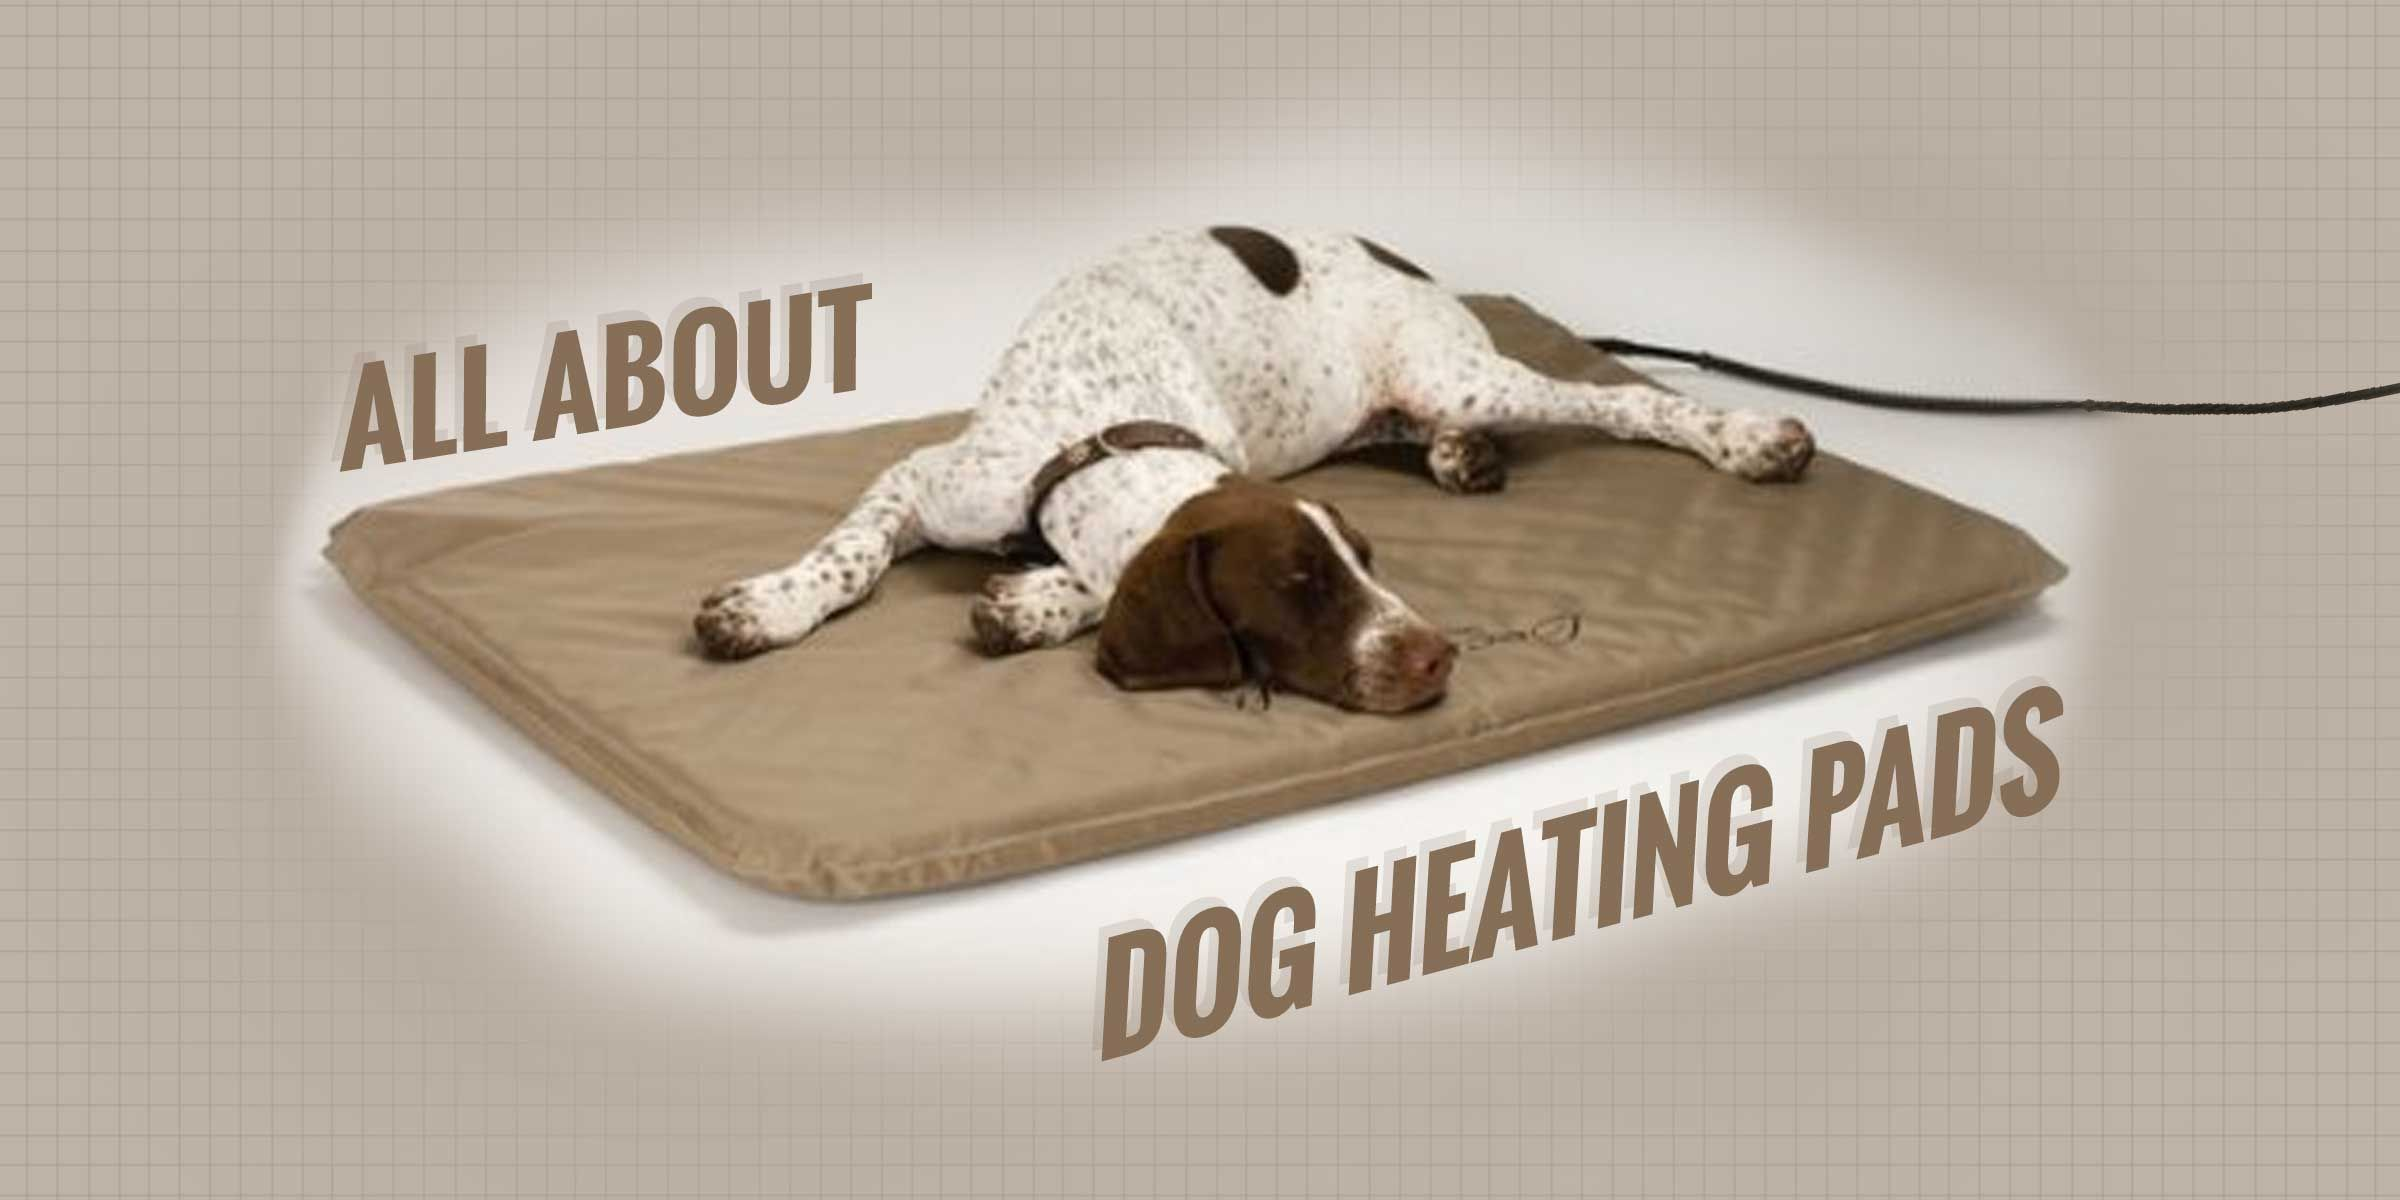 Dog Heating Pads — Buying Guide + Best Reviews is part of Dog Heating Pads Buying Guide Best Reviews - Dog heating pads add extra warmth to your dog's bed  They can be electric, microwaveable or selfheating  We list the best heating pads for dogs